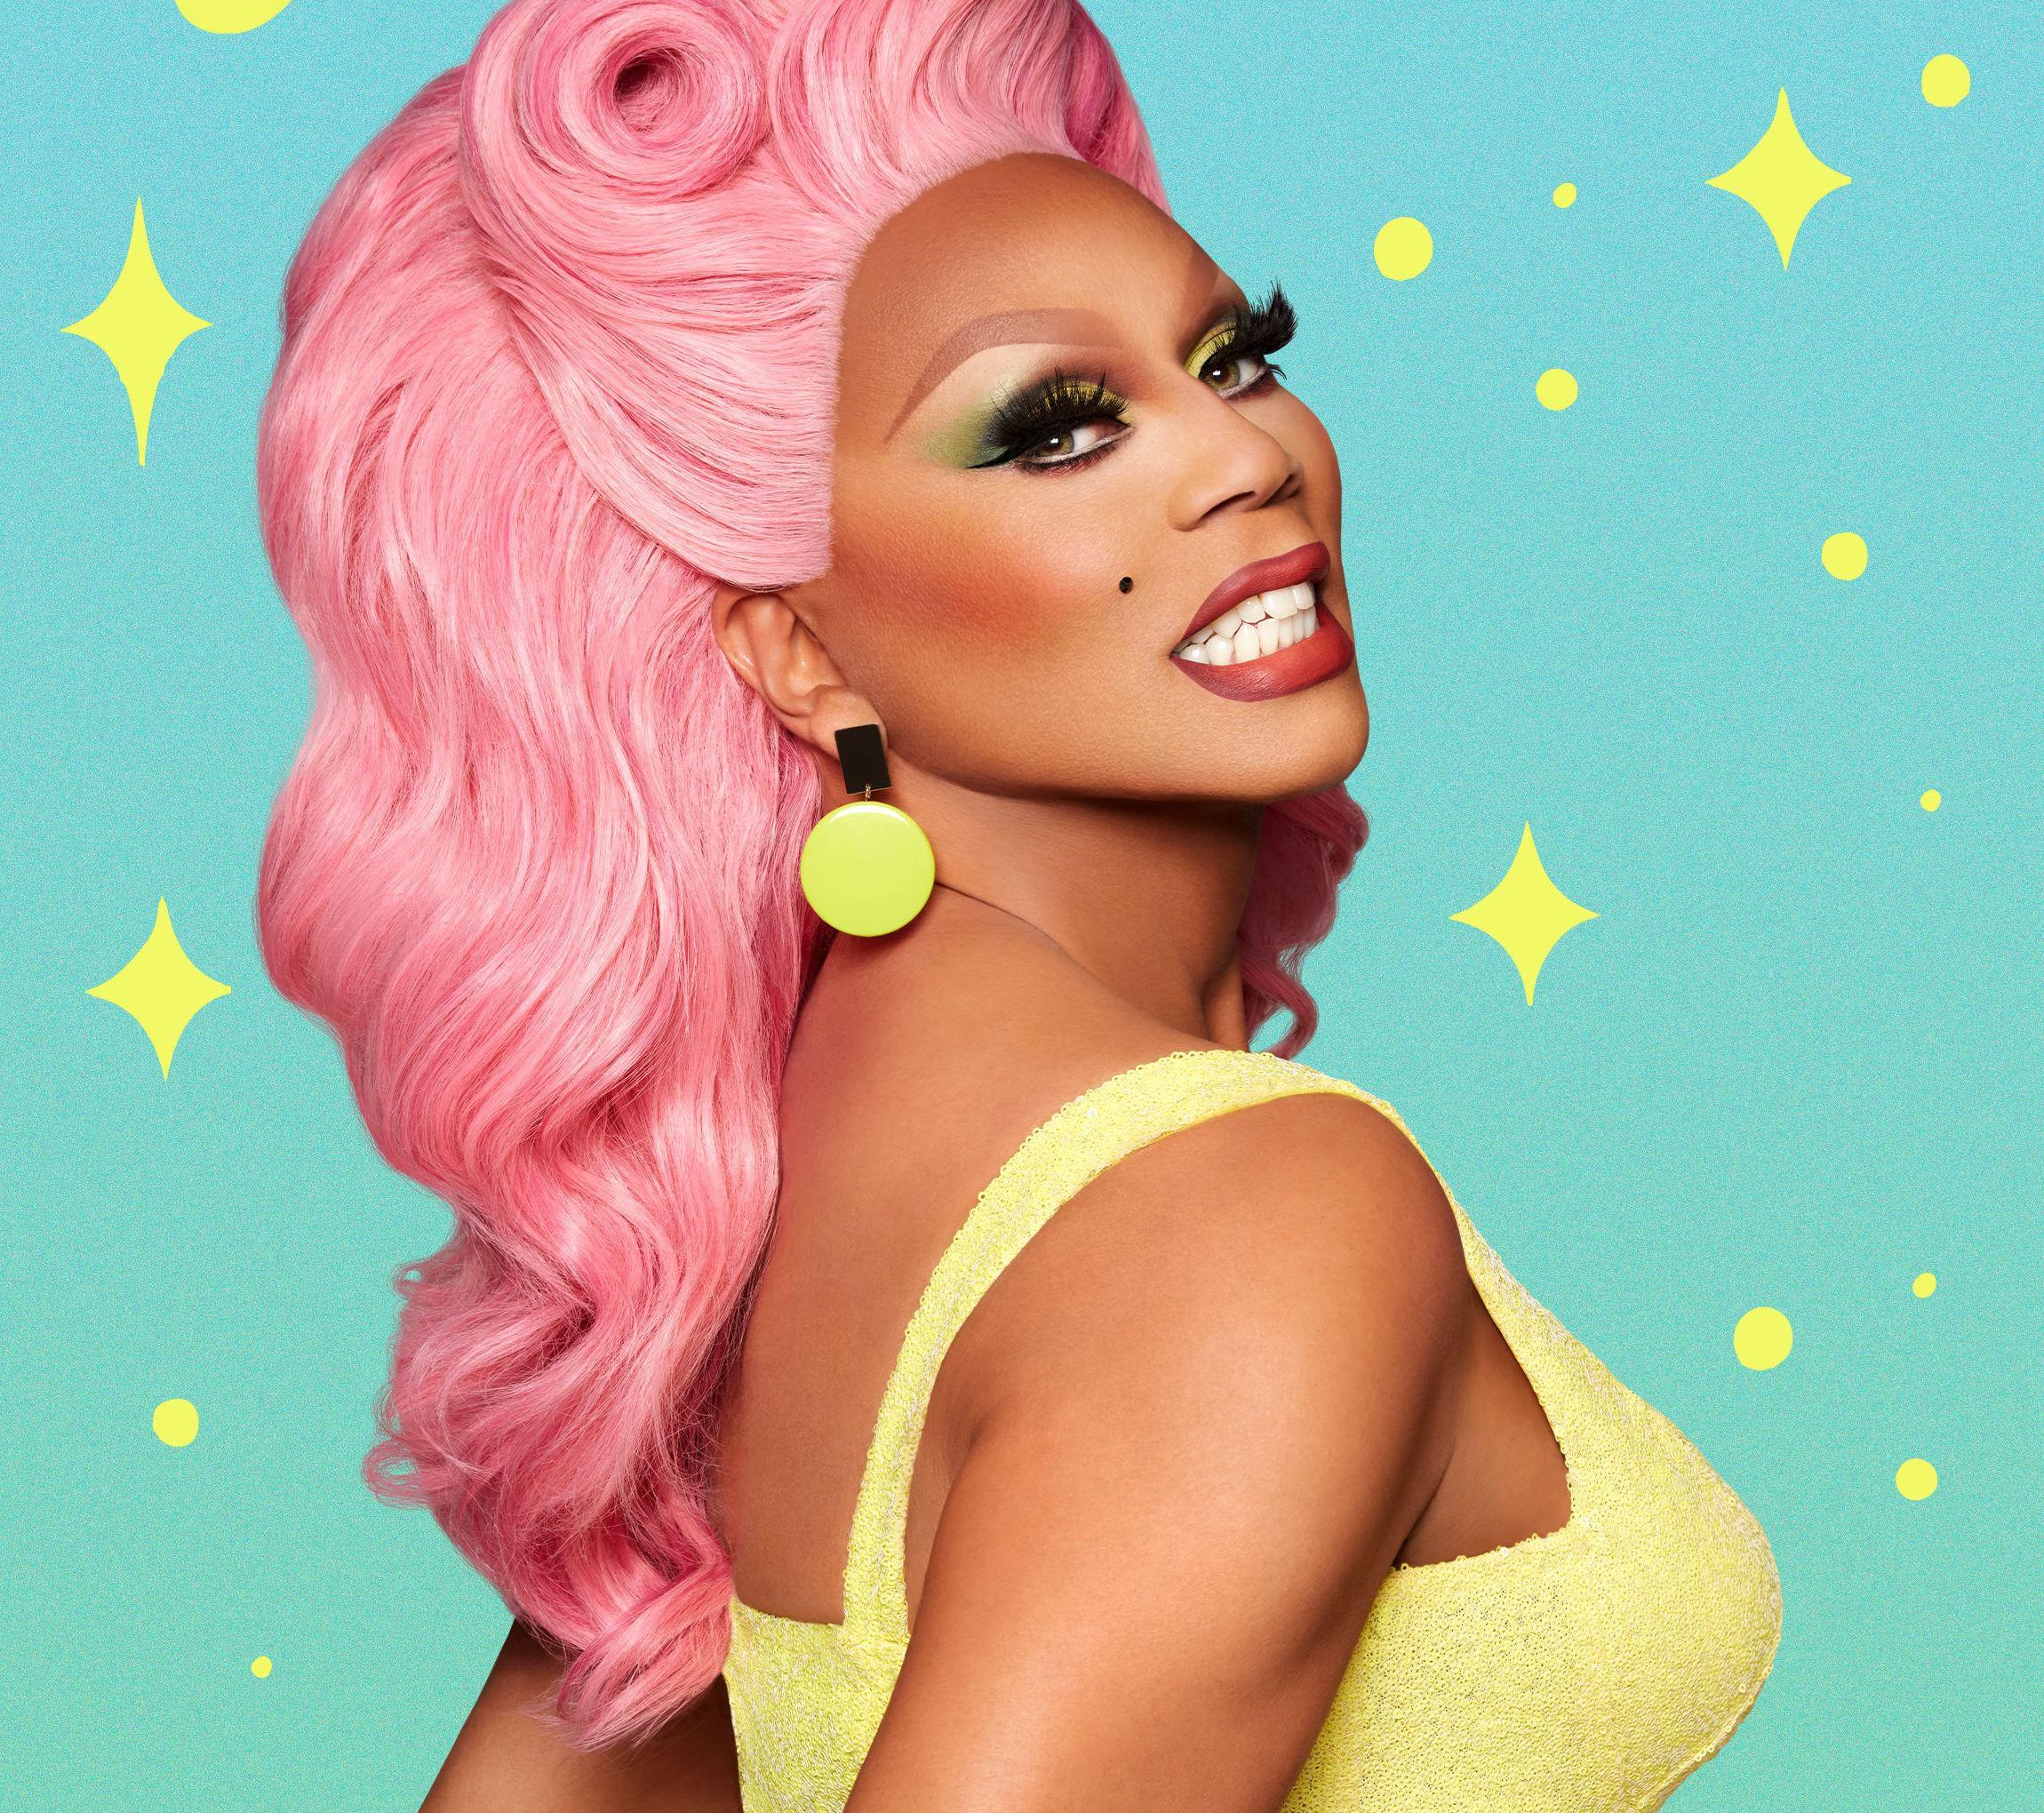 RuPaul in a pink wig and yellow dress